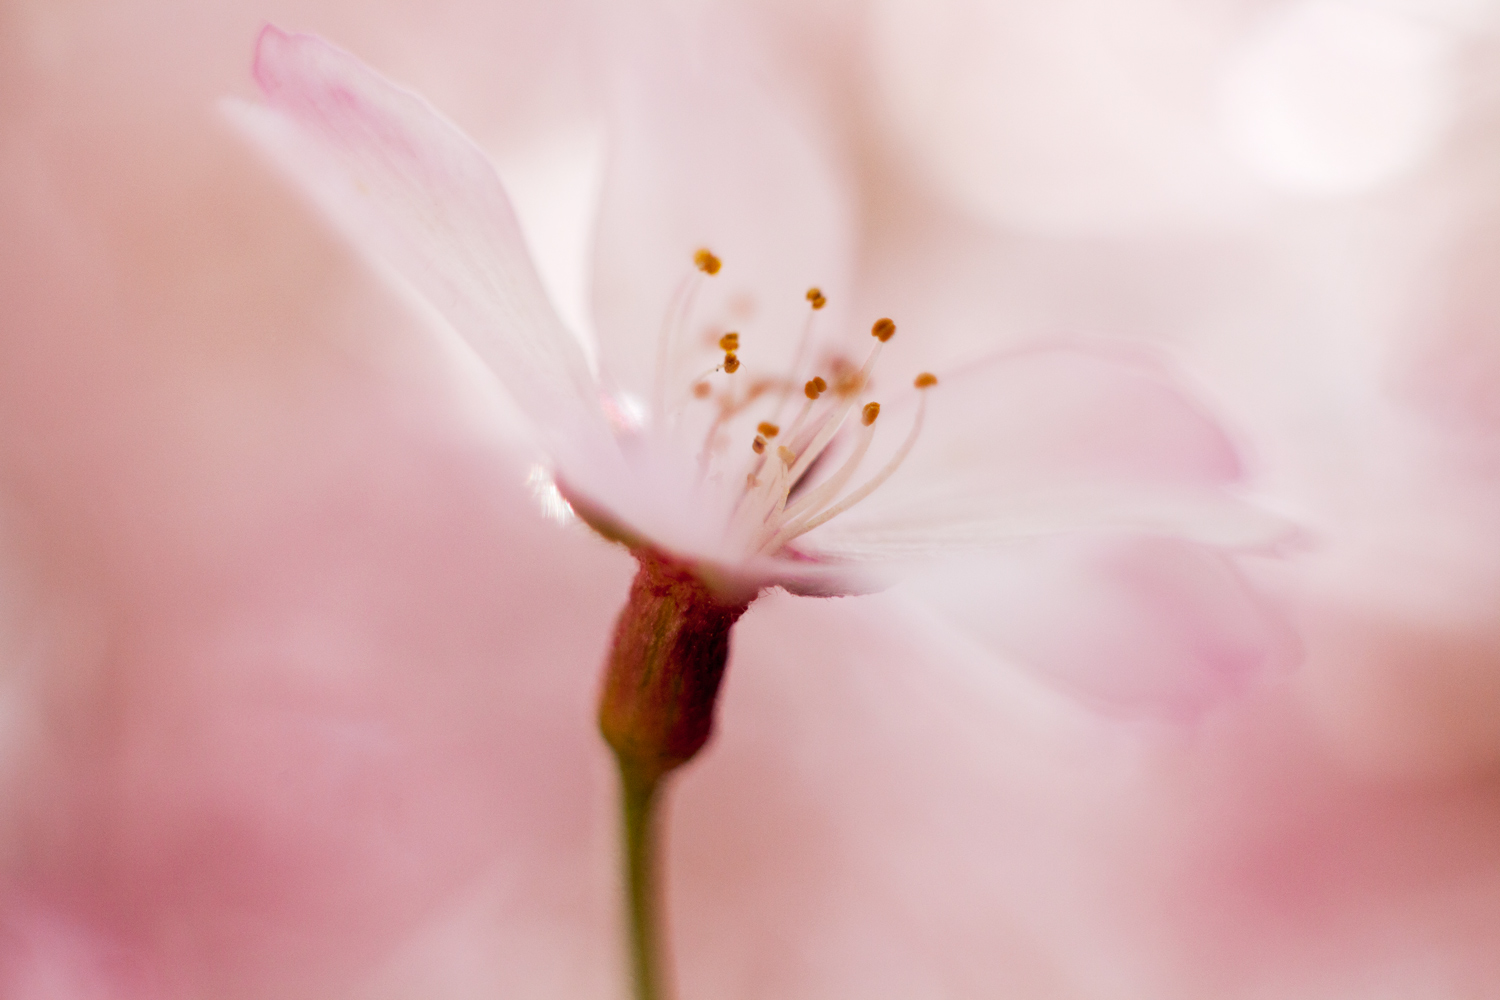 shape-and-form-in-photography-pink-blossom